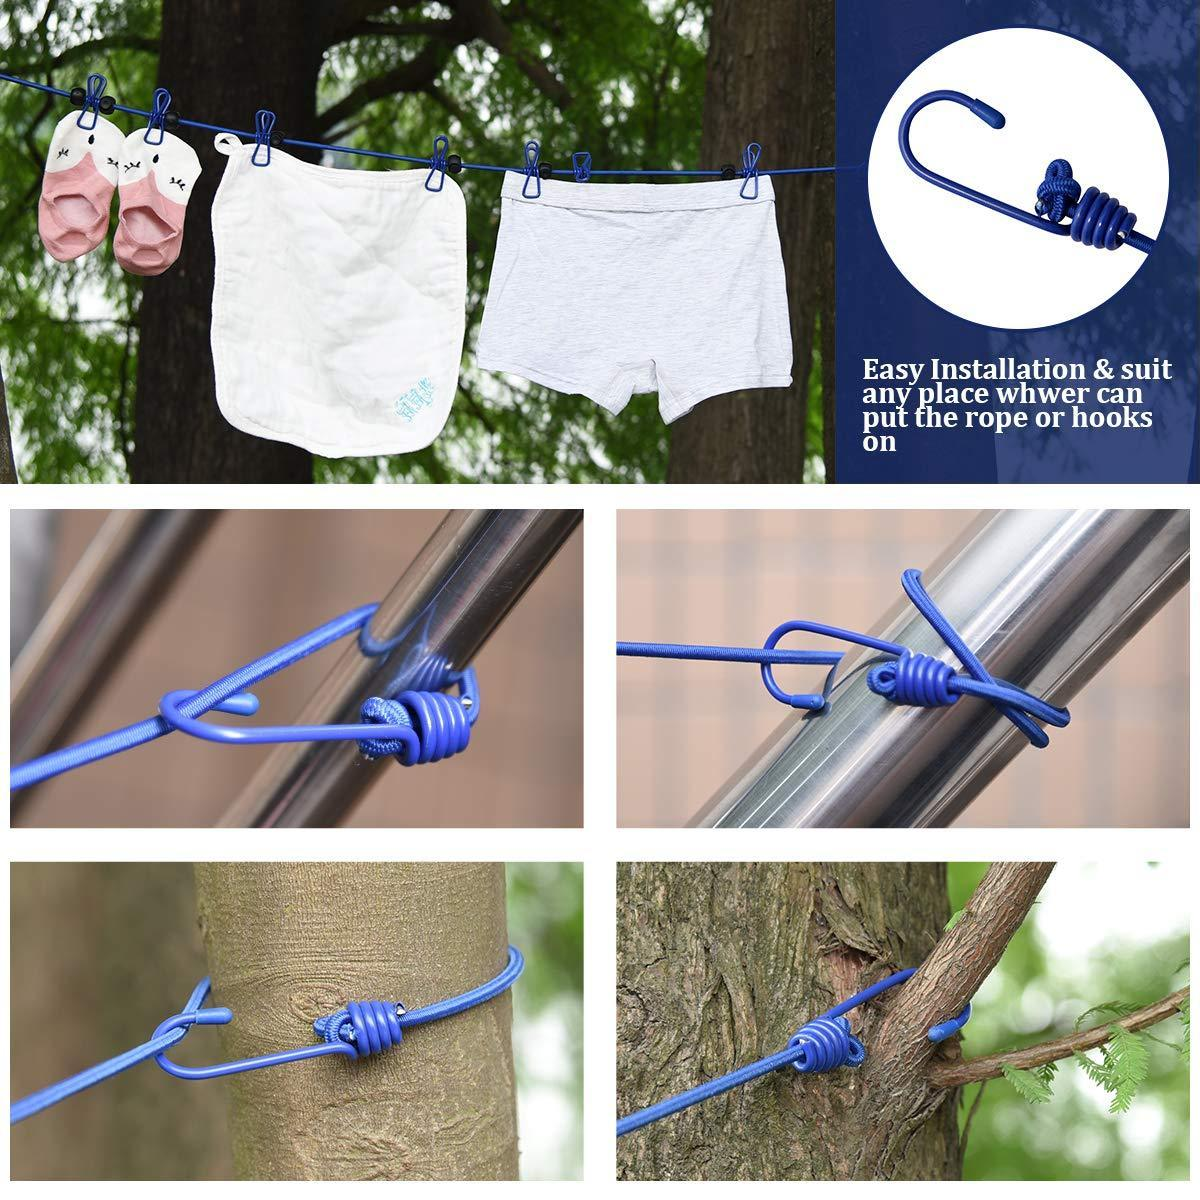 Travel Clothesline With Clothespin - Buy 2 Get 1 Free + Free Shipping!